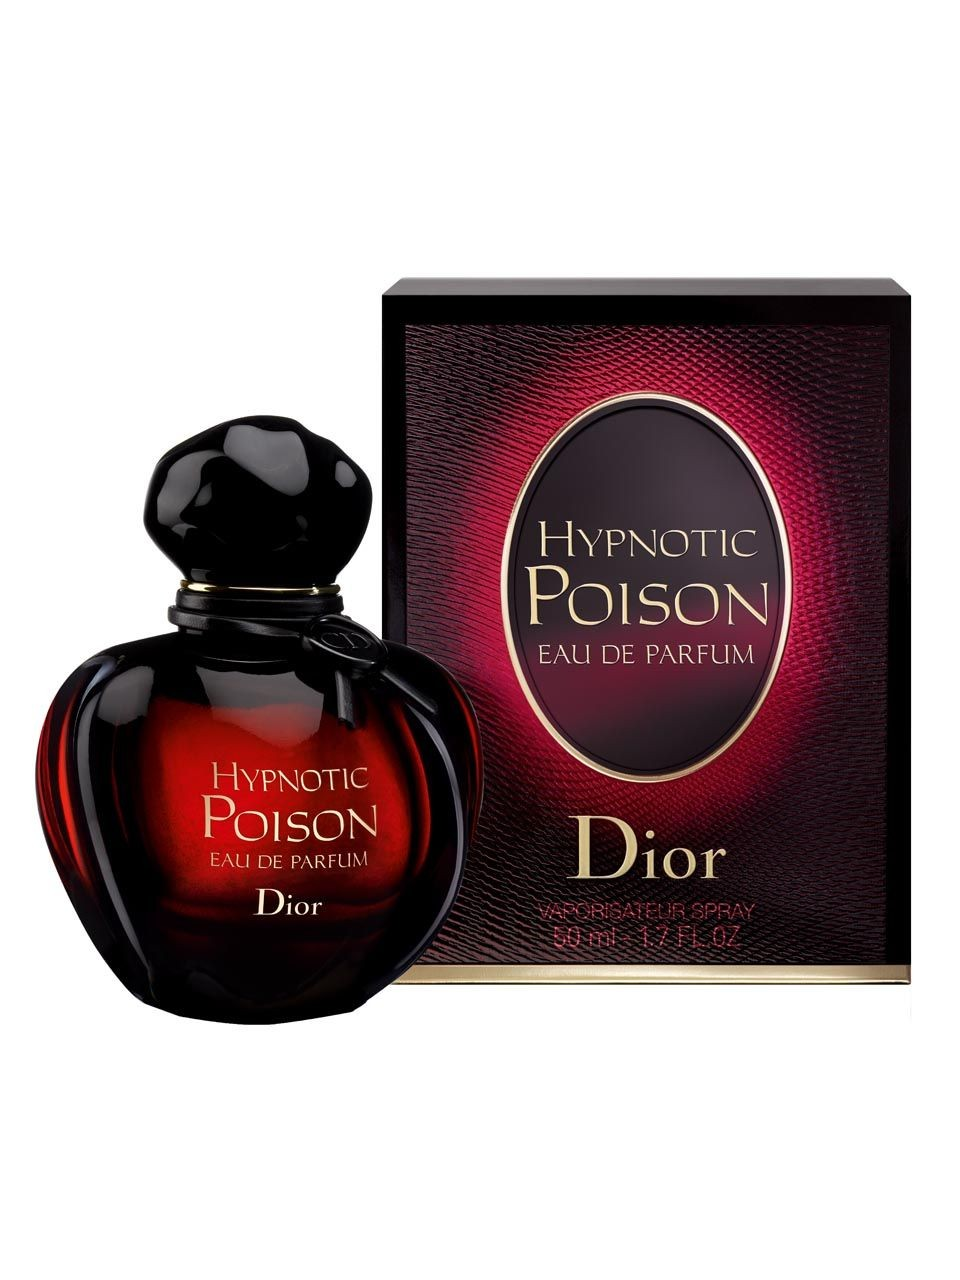 hypnotic poison eau de parfum christian dior perfume a. Black Bedroom Furniture Sets. Home Design Ideas